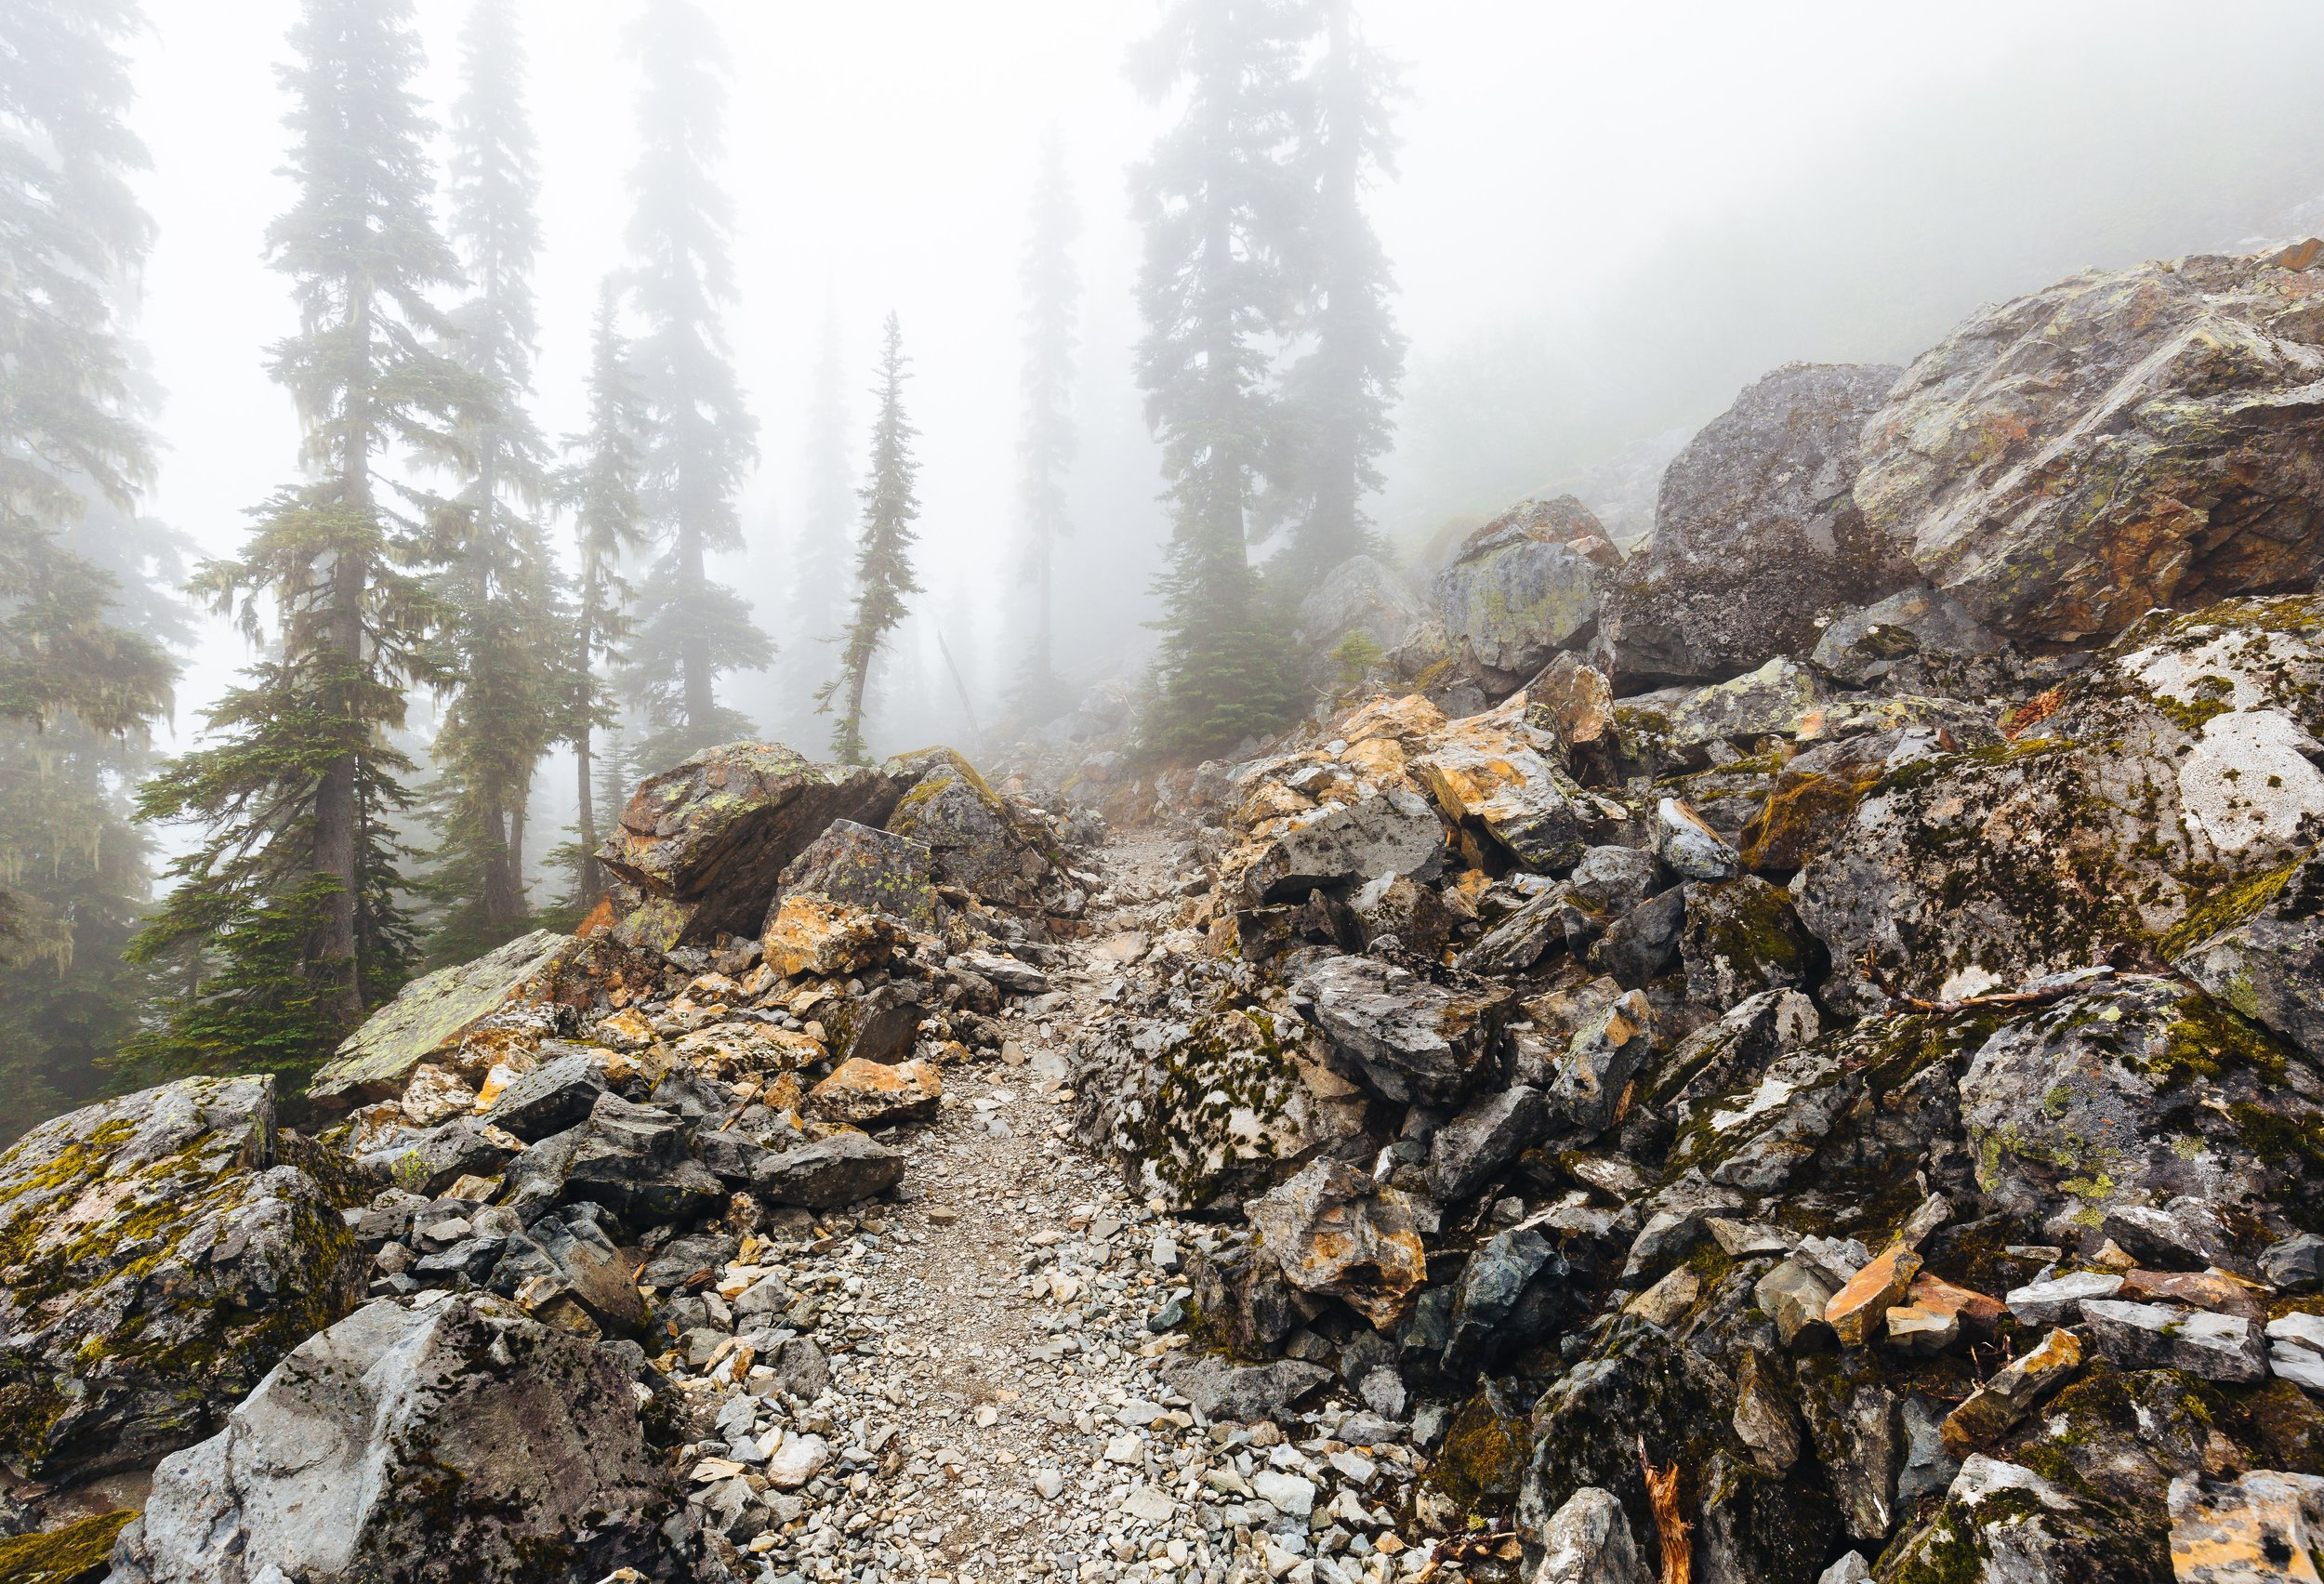 Pacific Crest Trail on a foggy day